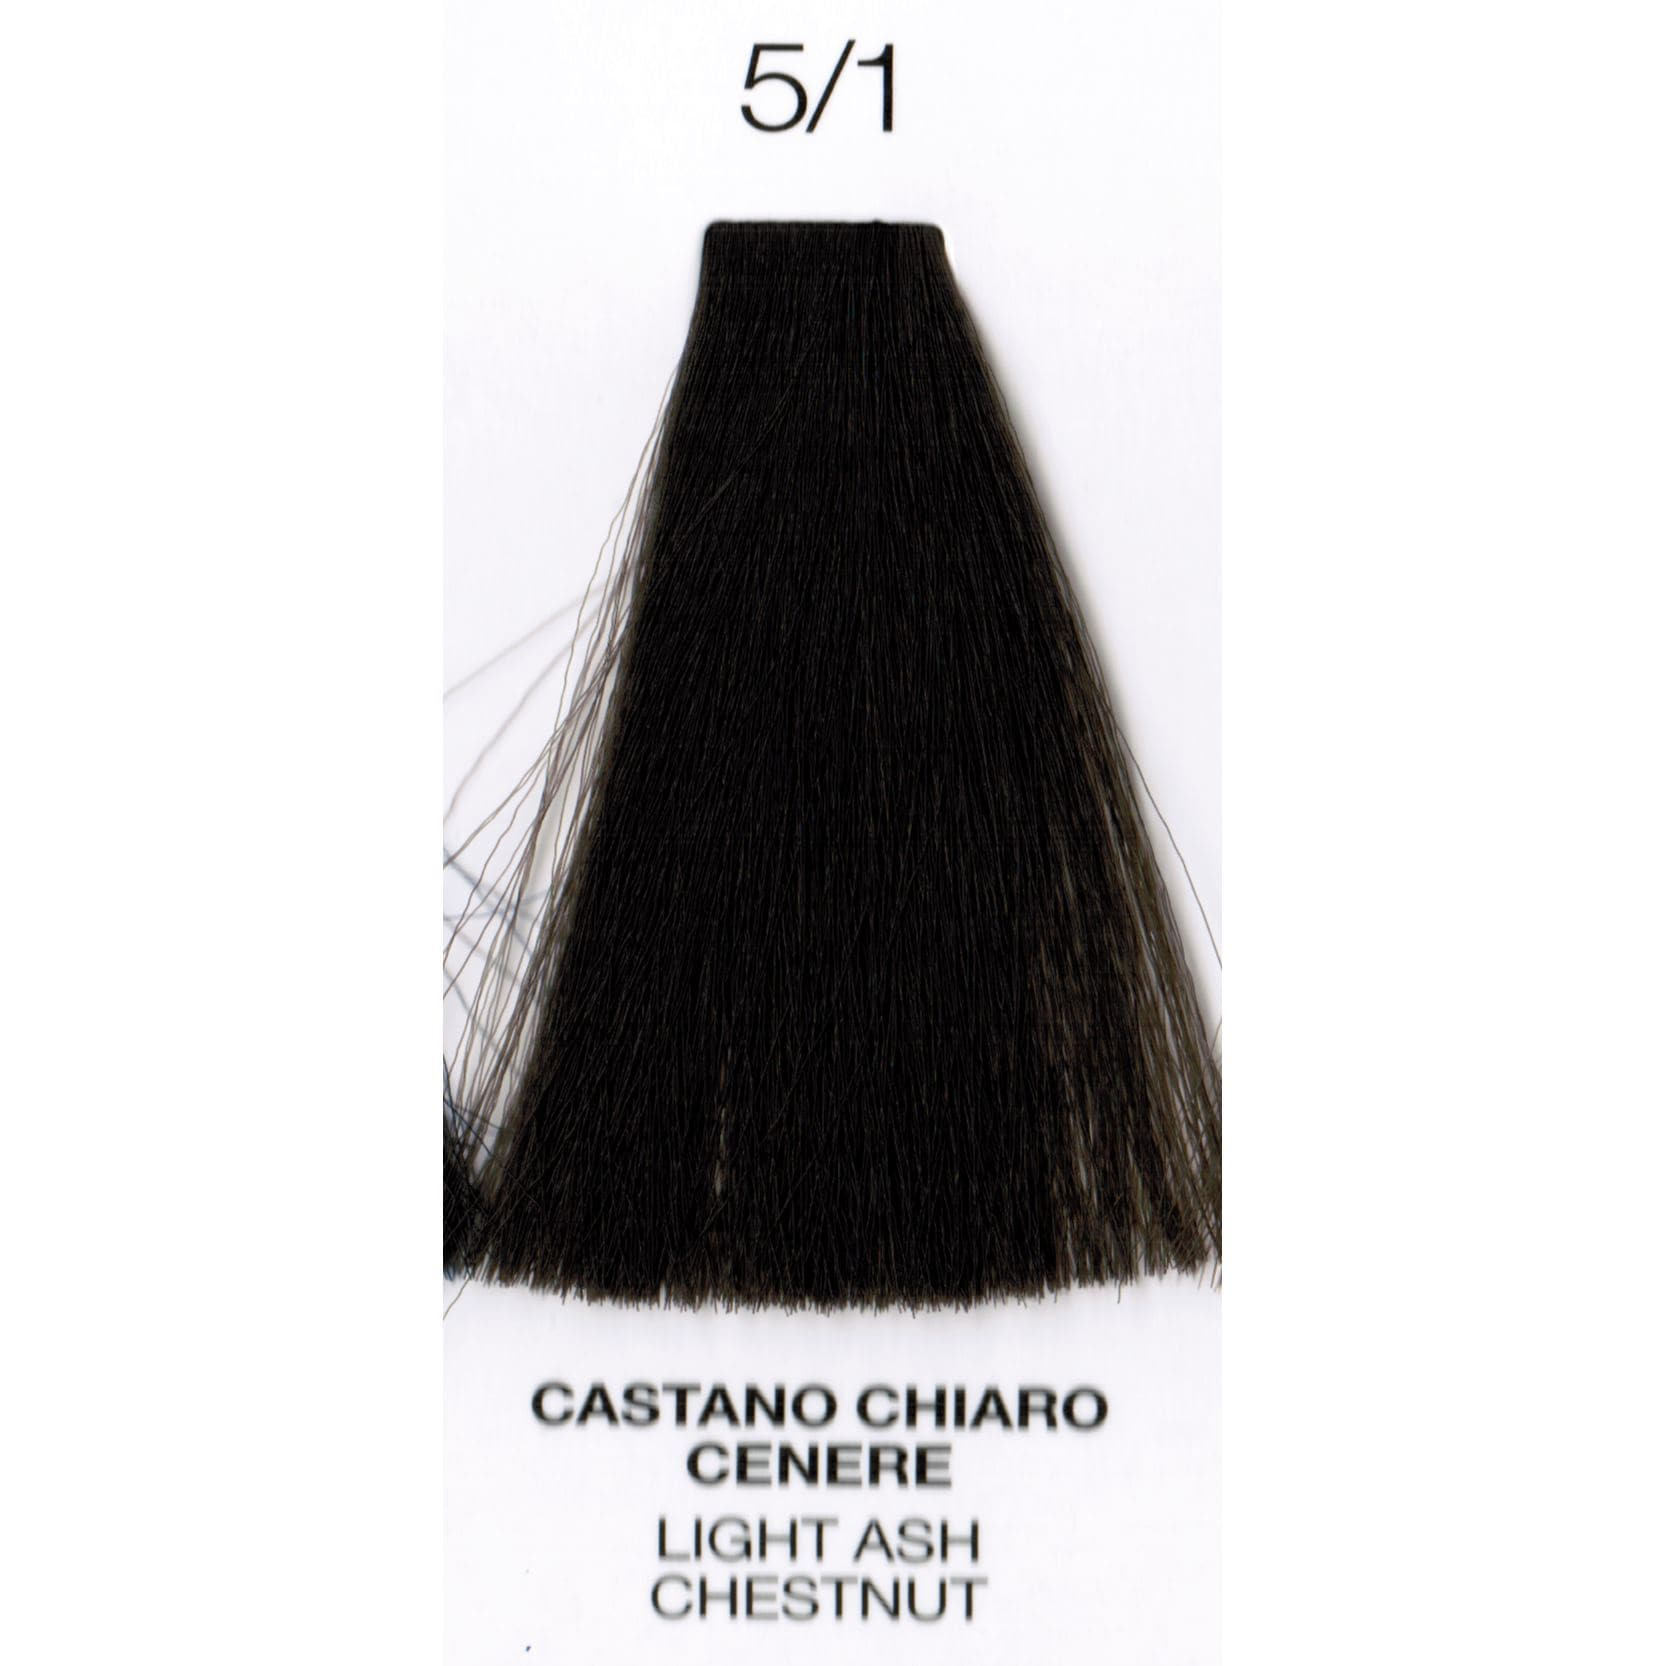 5/1 Light Ash Chestnut | Purity | Ammonia-Free Permanent Hair Color | OYSTER | SHSalons.com